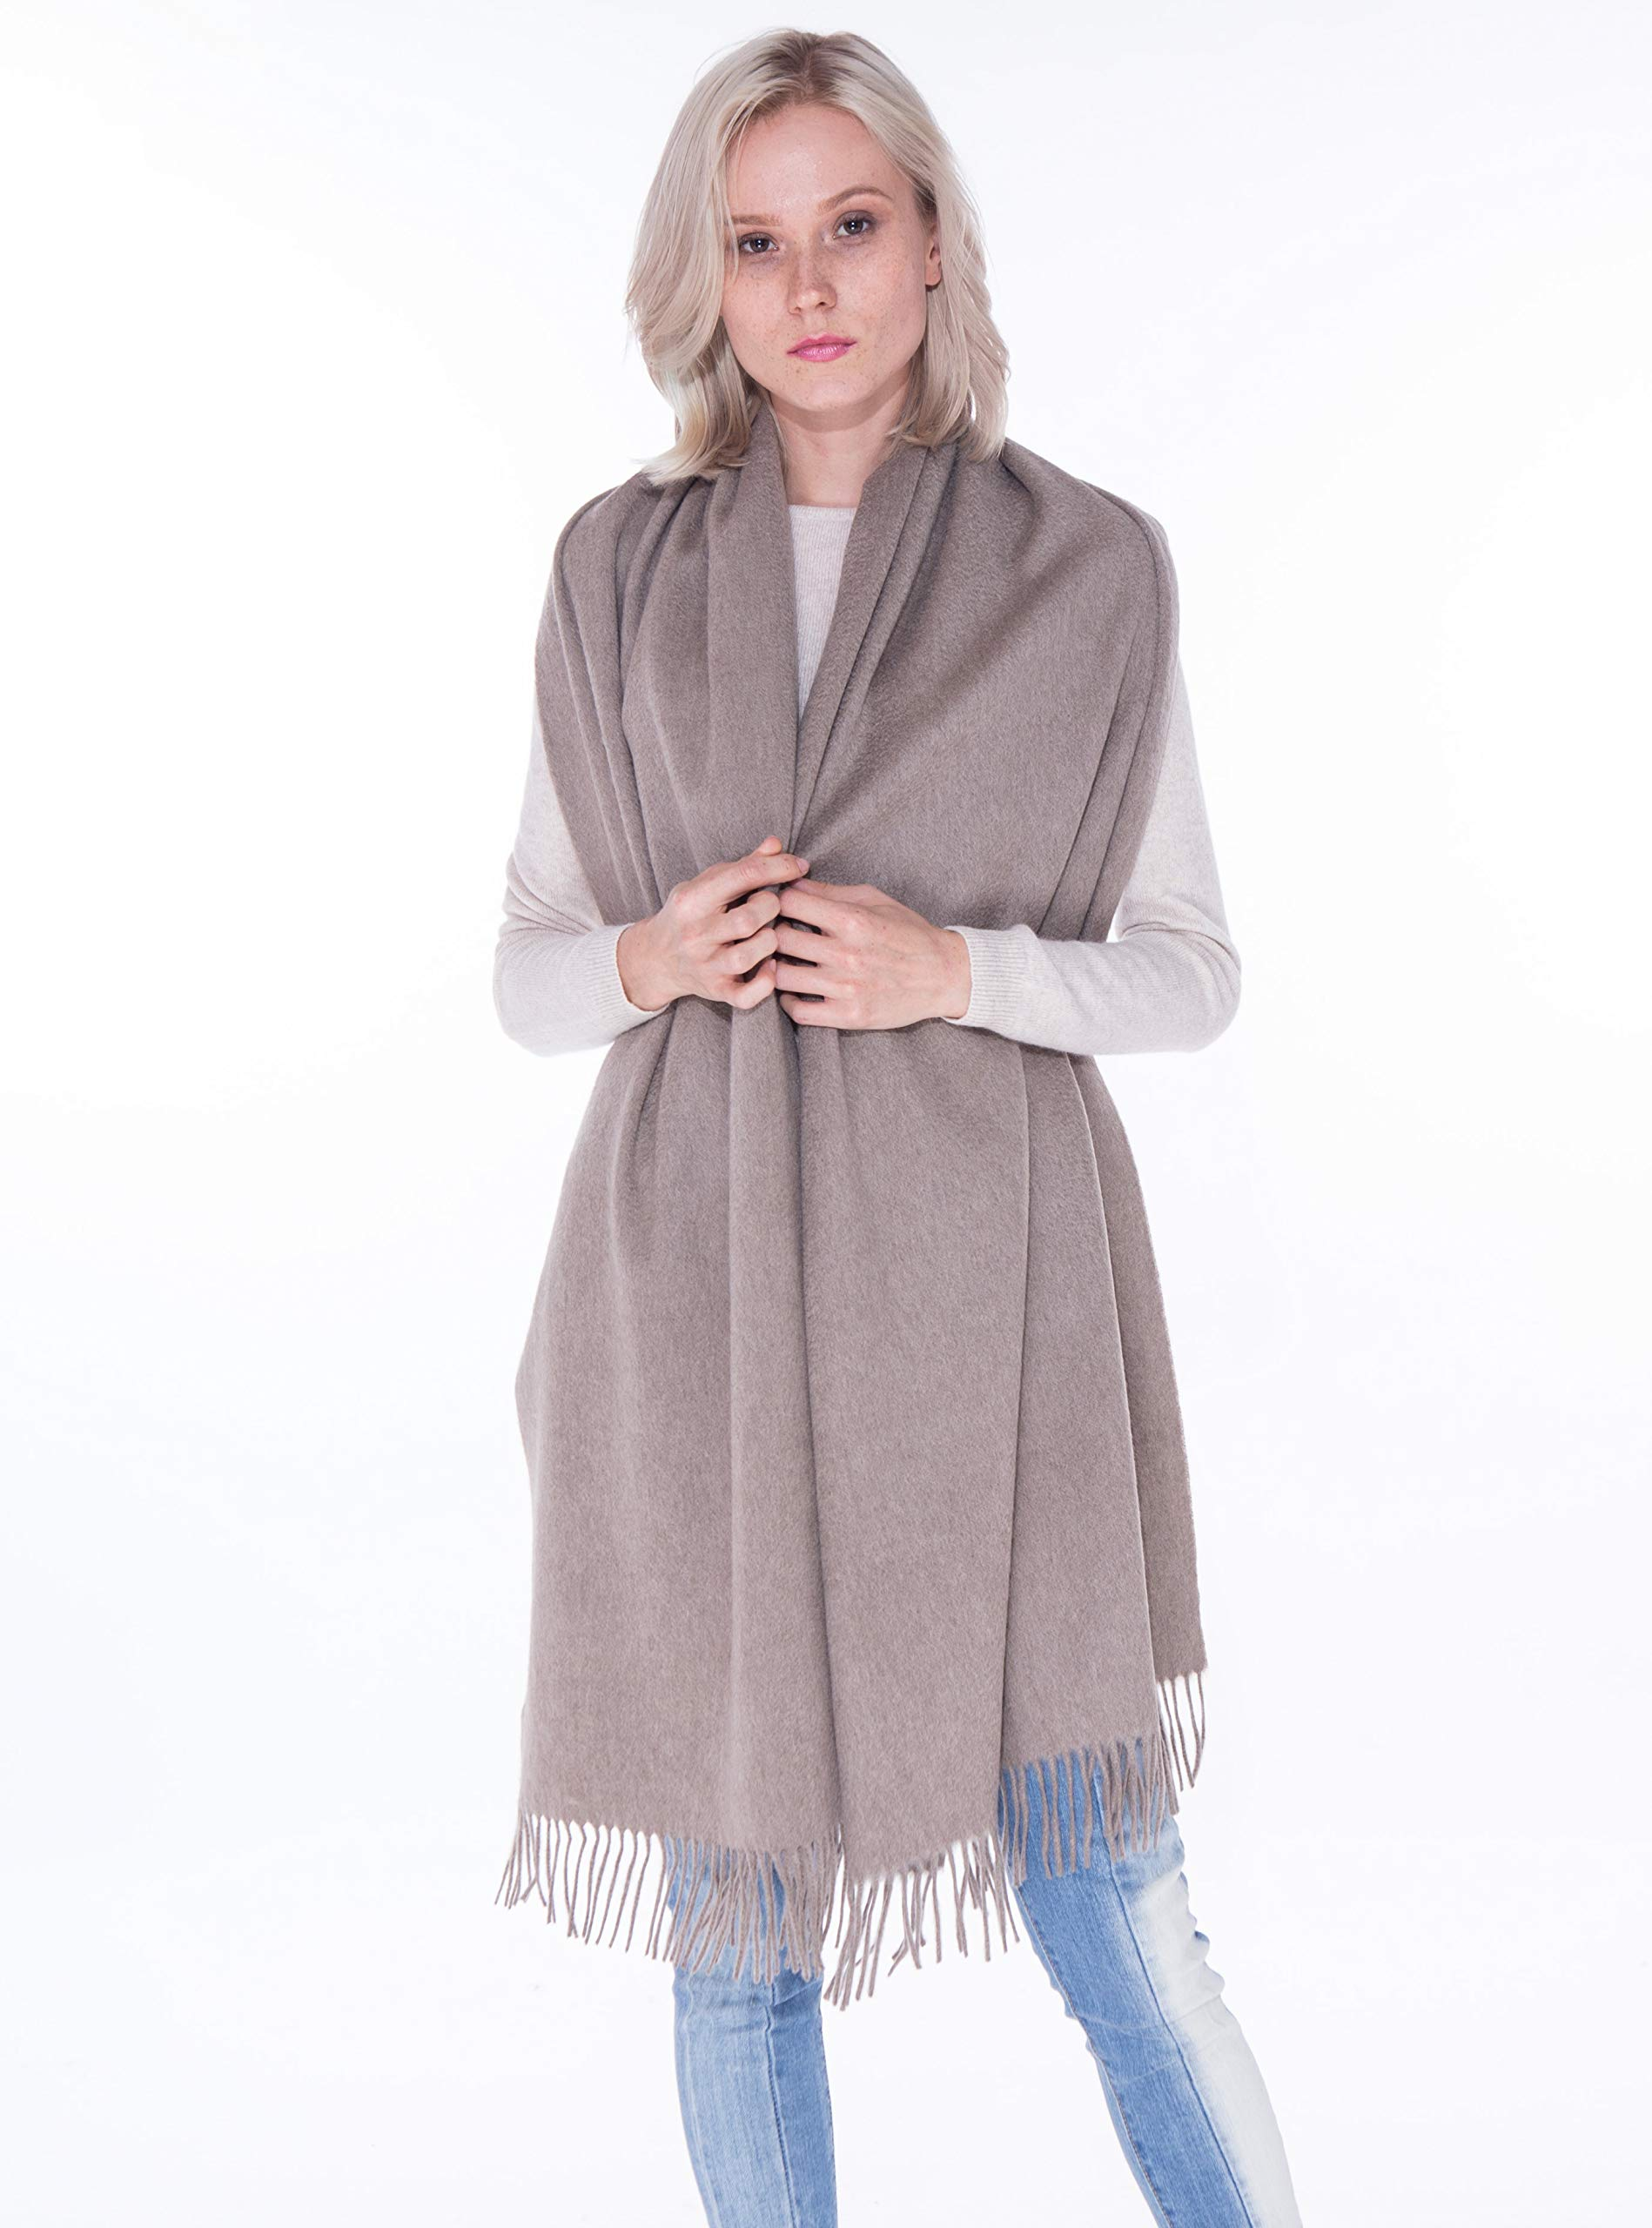 cashmere 4 U Women's 100% Cashmere Wrap for Travel Shawl Stole - Extra Large Scarf for Winter (Lin)